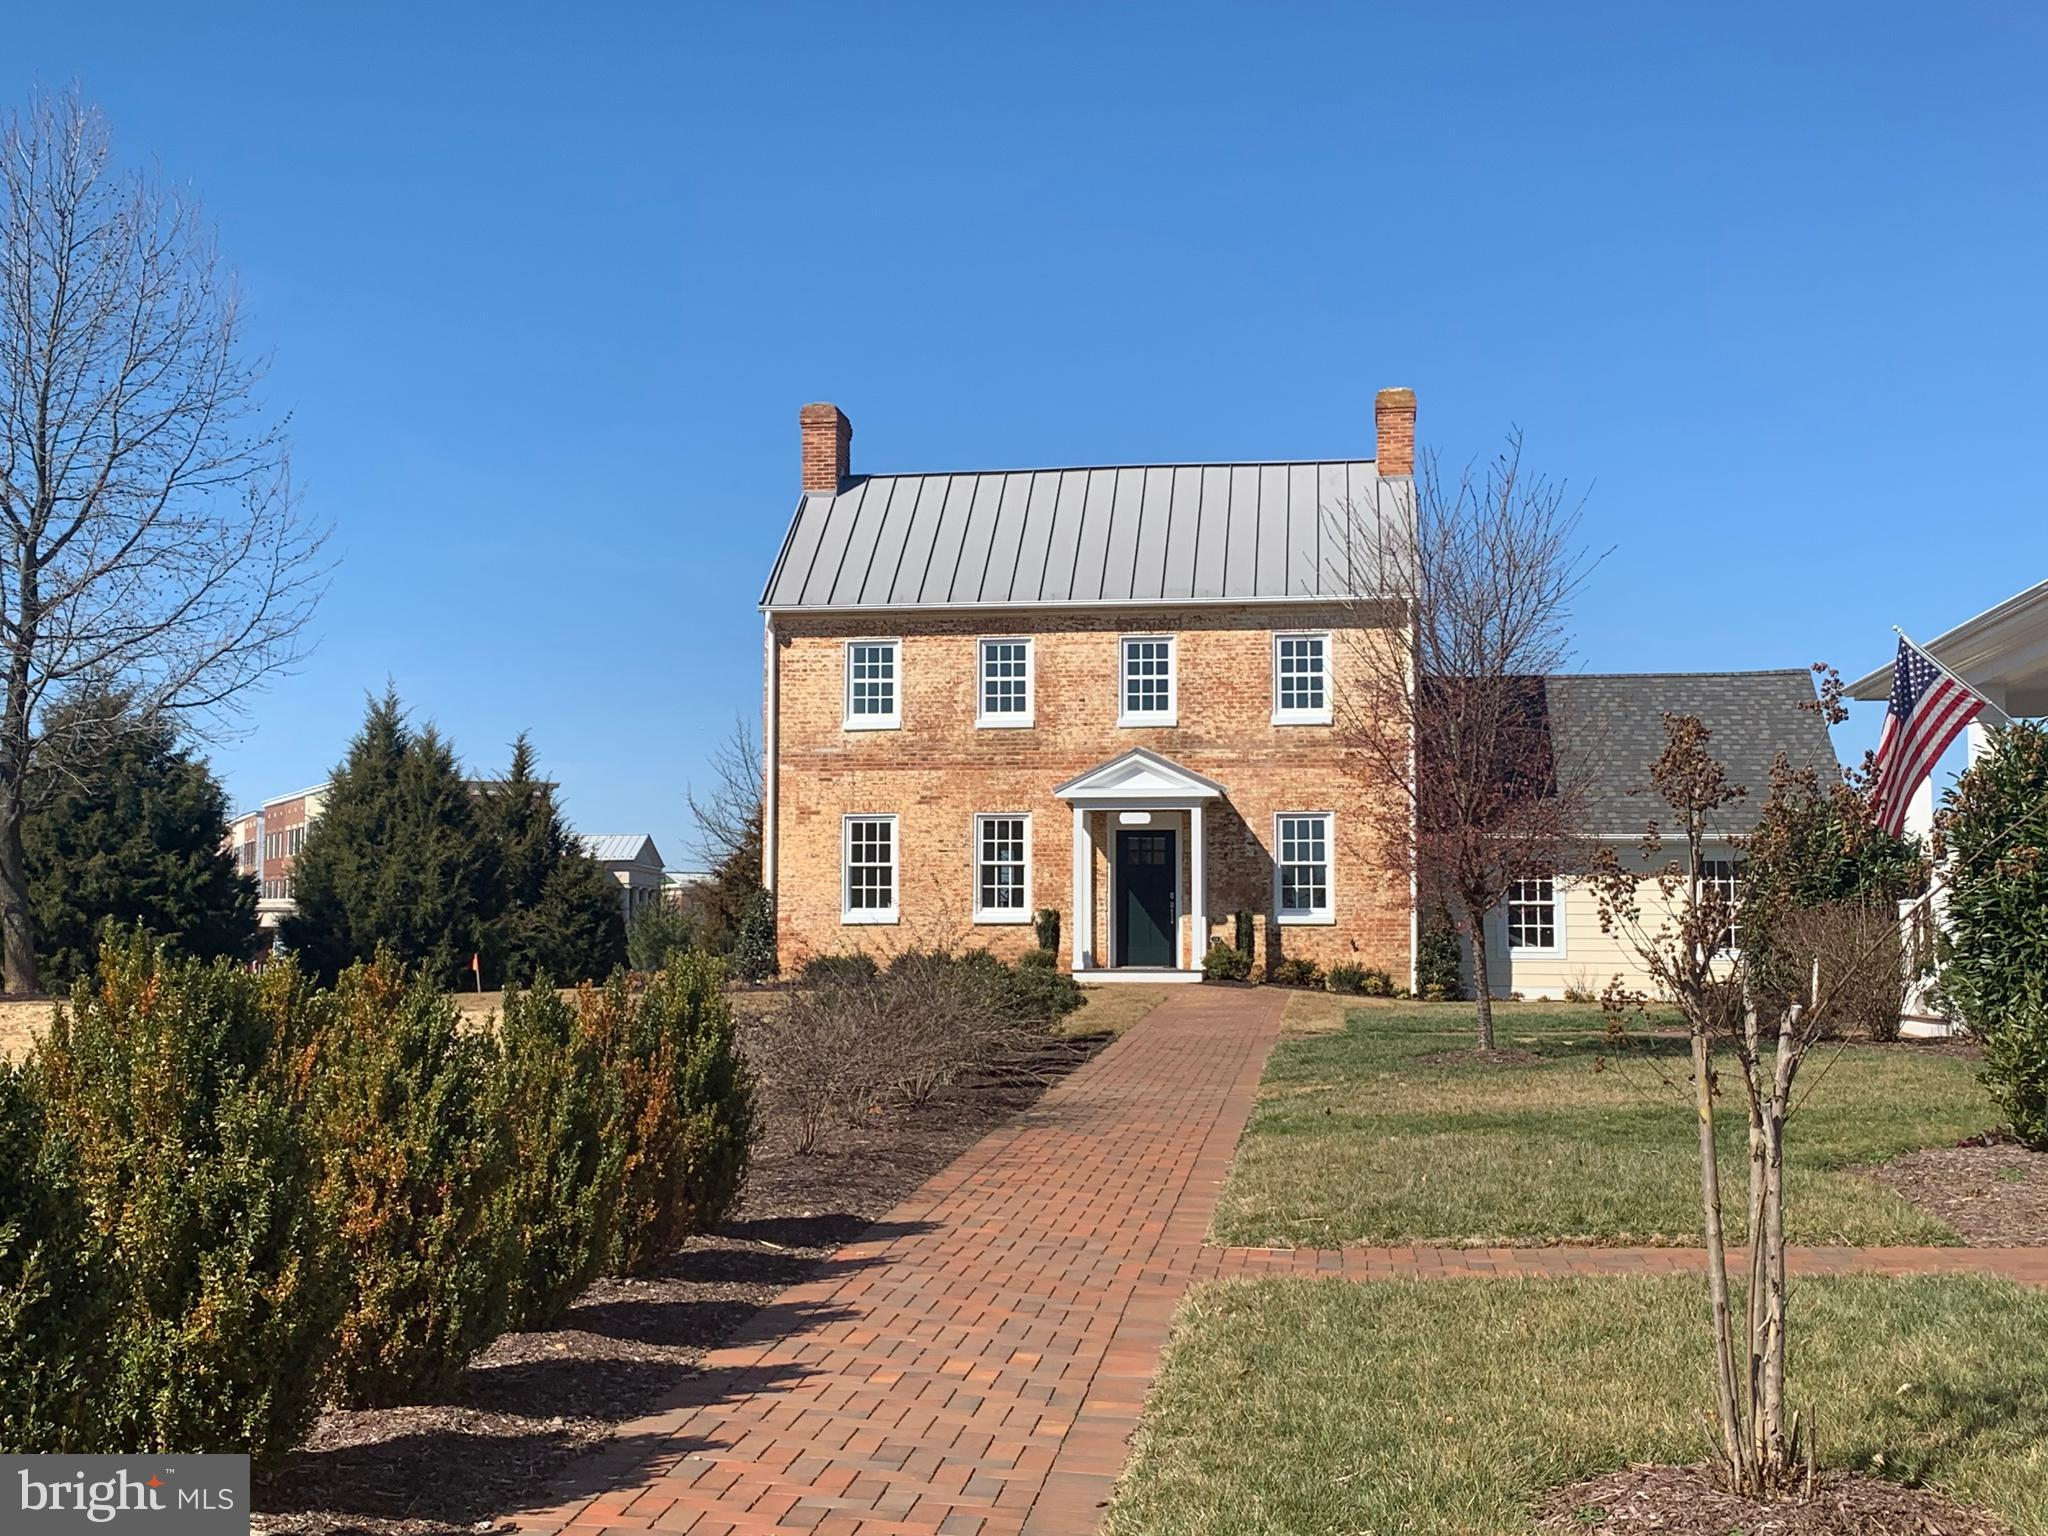 9101 KENWAY, FREDERICK, MD 21704